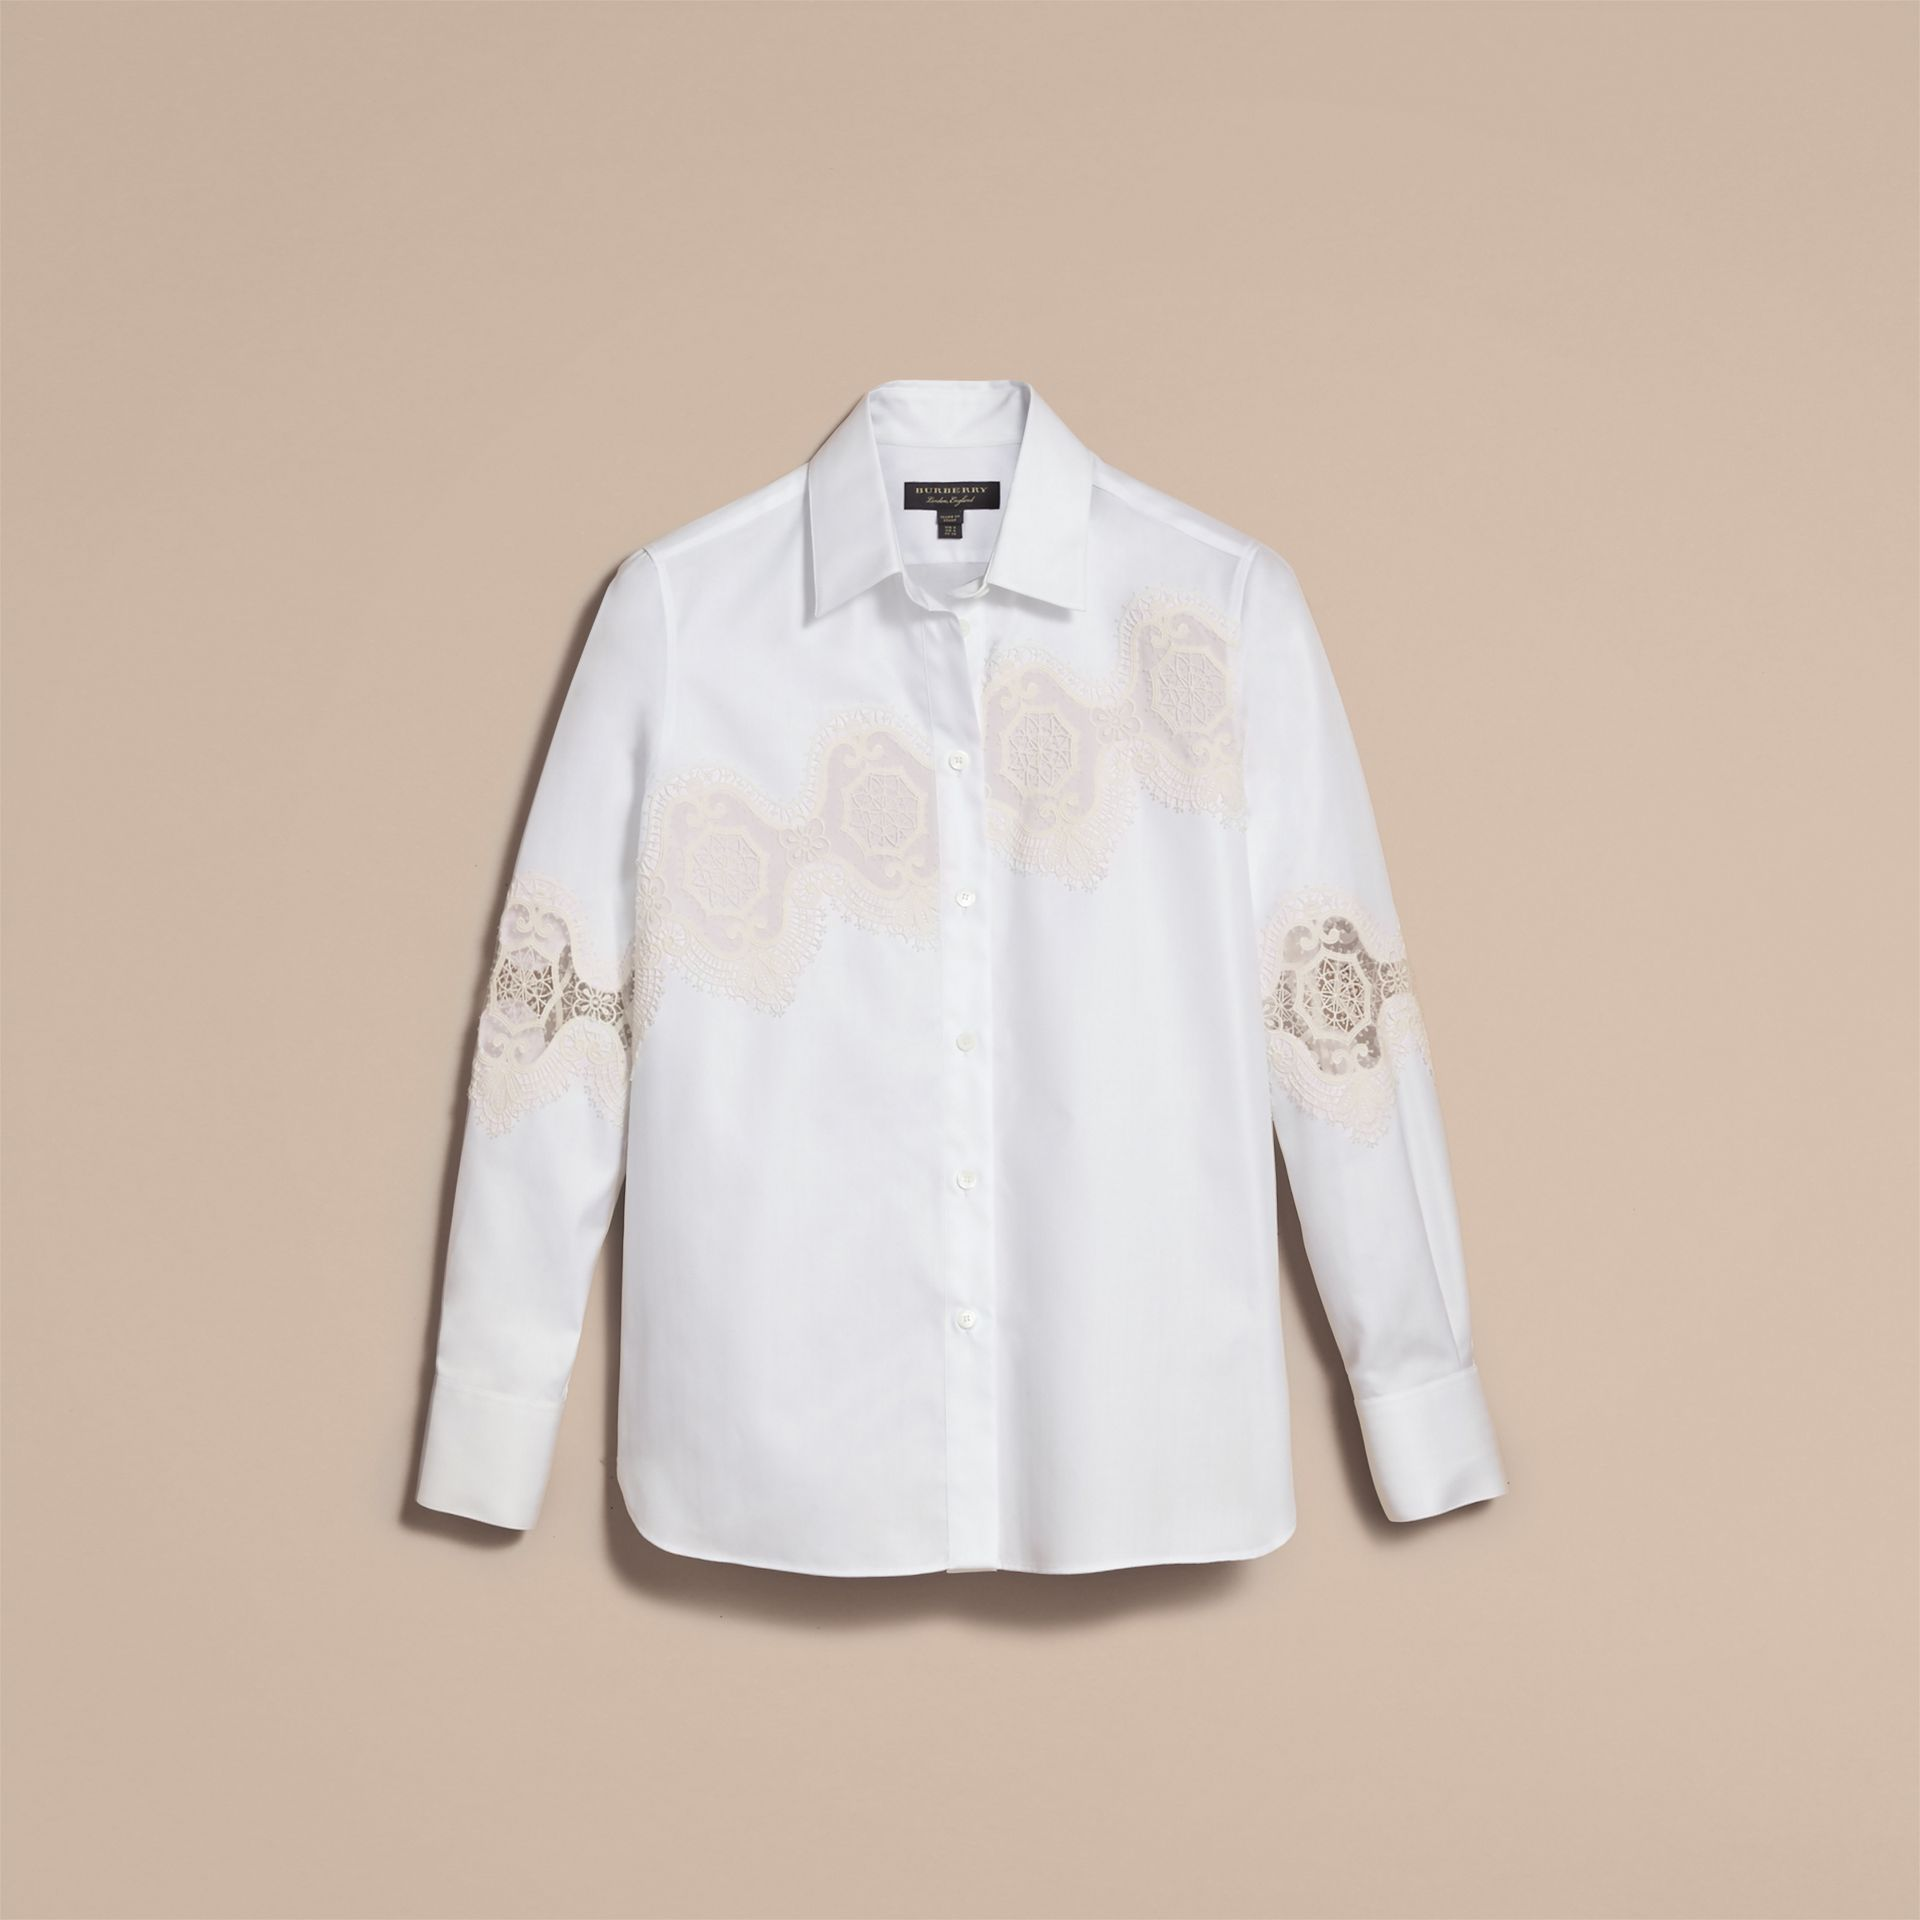 Lace Cutwork Herringbone Cotton Shirt in White - Women | Burberry Canada - gallery image 4